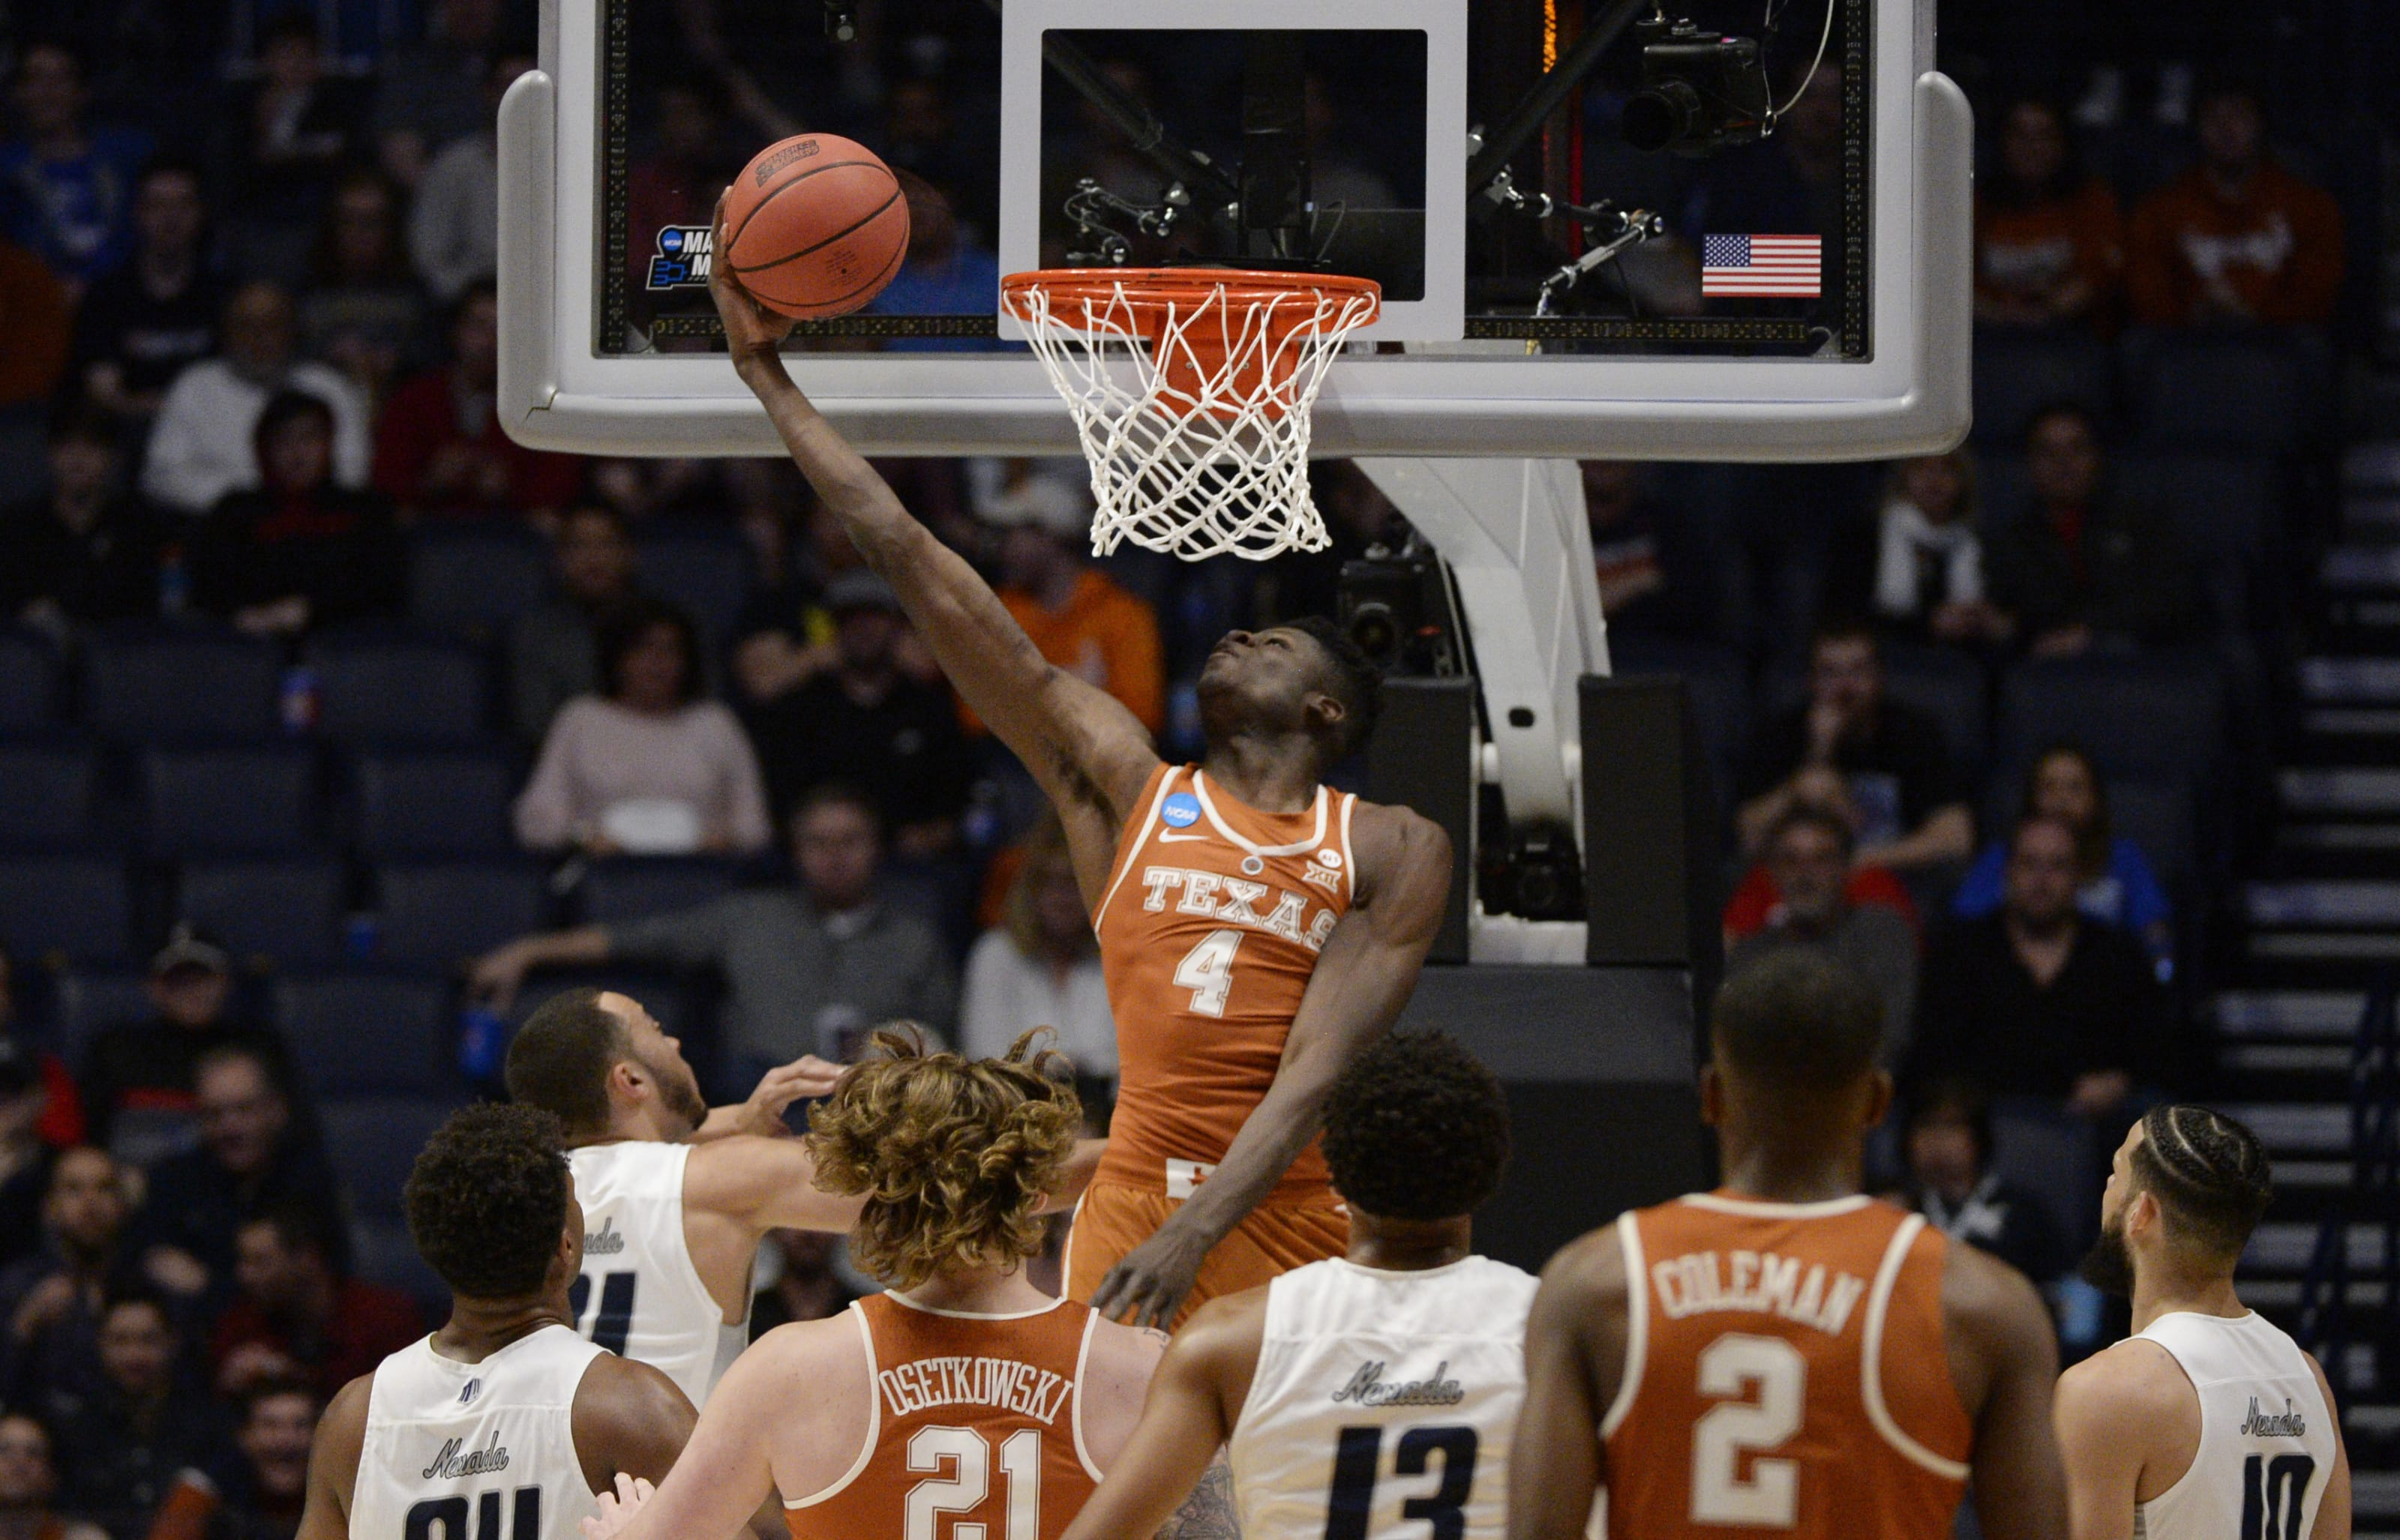 Mohamed Bamba, Texas Longhorns